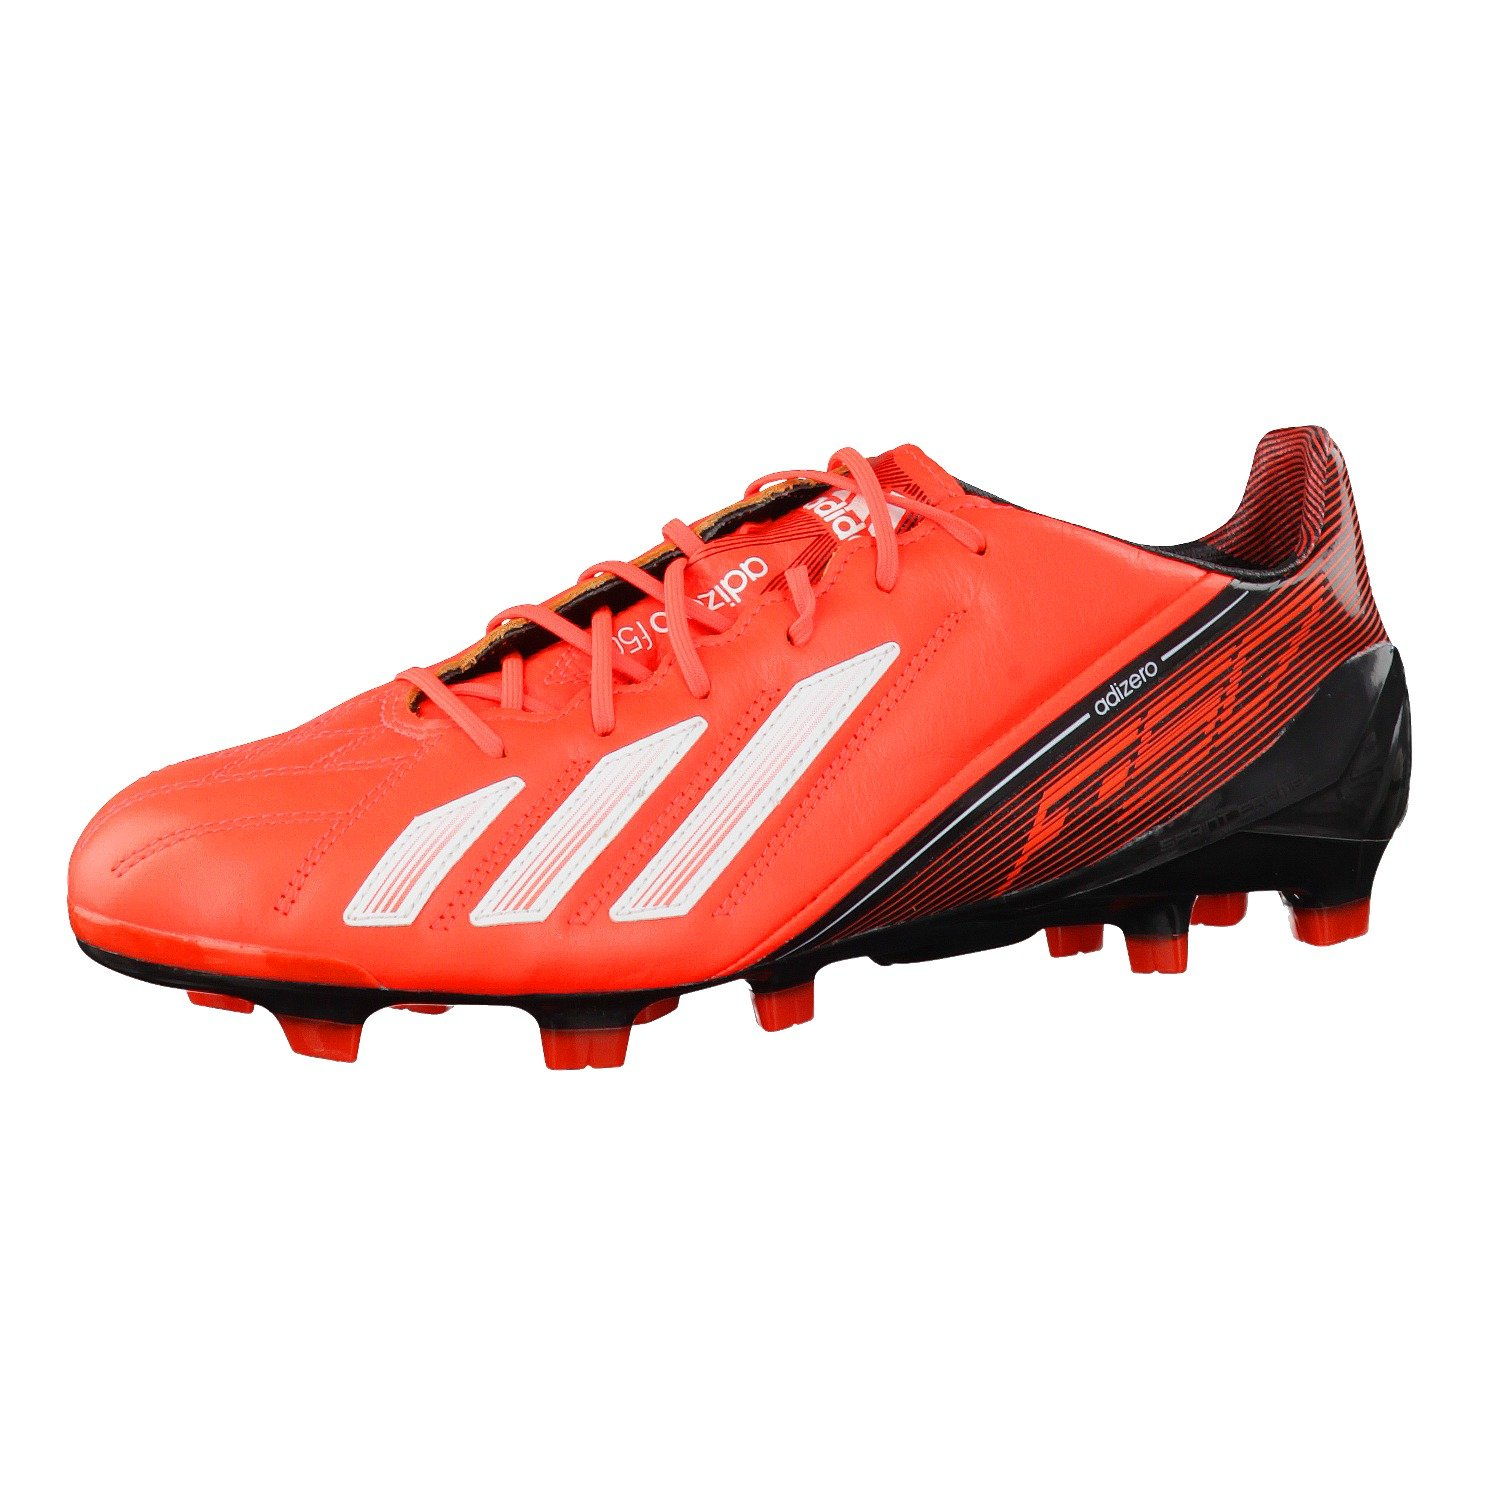 lowest price 52165 90a38 Adidas ADIZERO F50 TRX FG LEATHER Red Men Leather Football Shoes   Amazon.co.uk  Sports   Outdoors